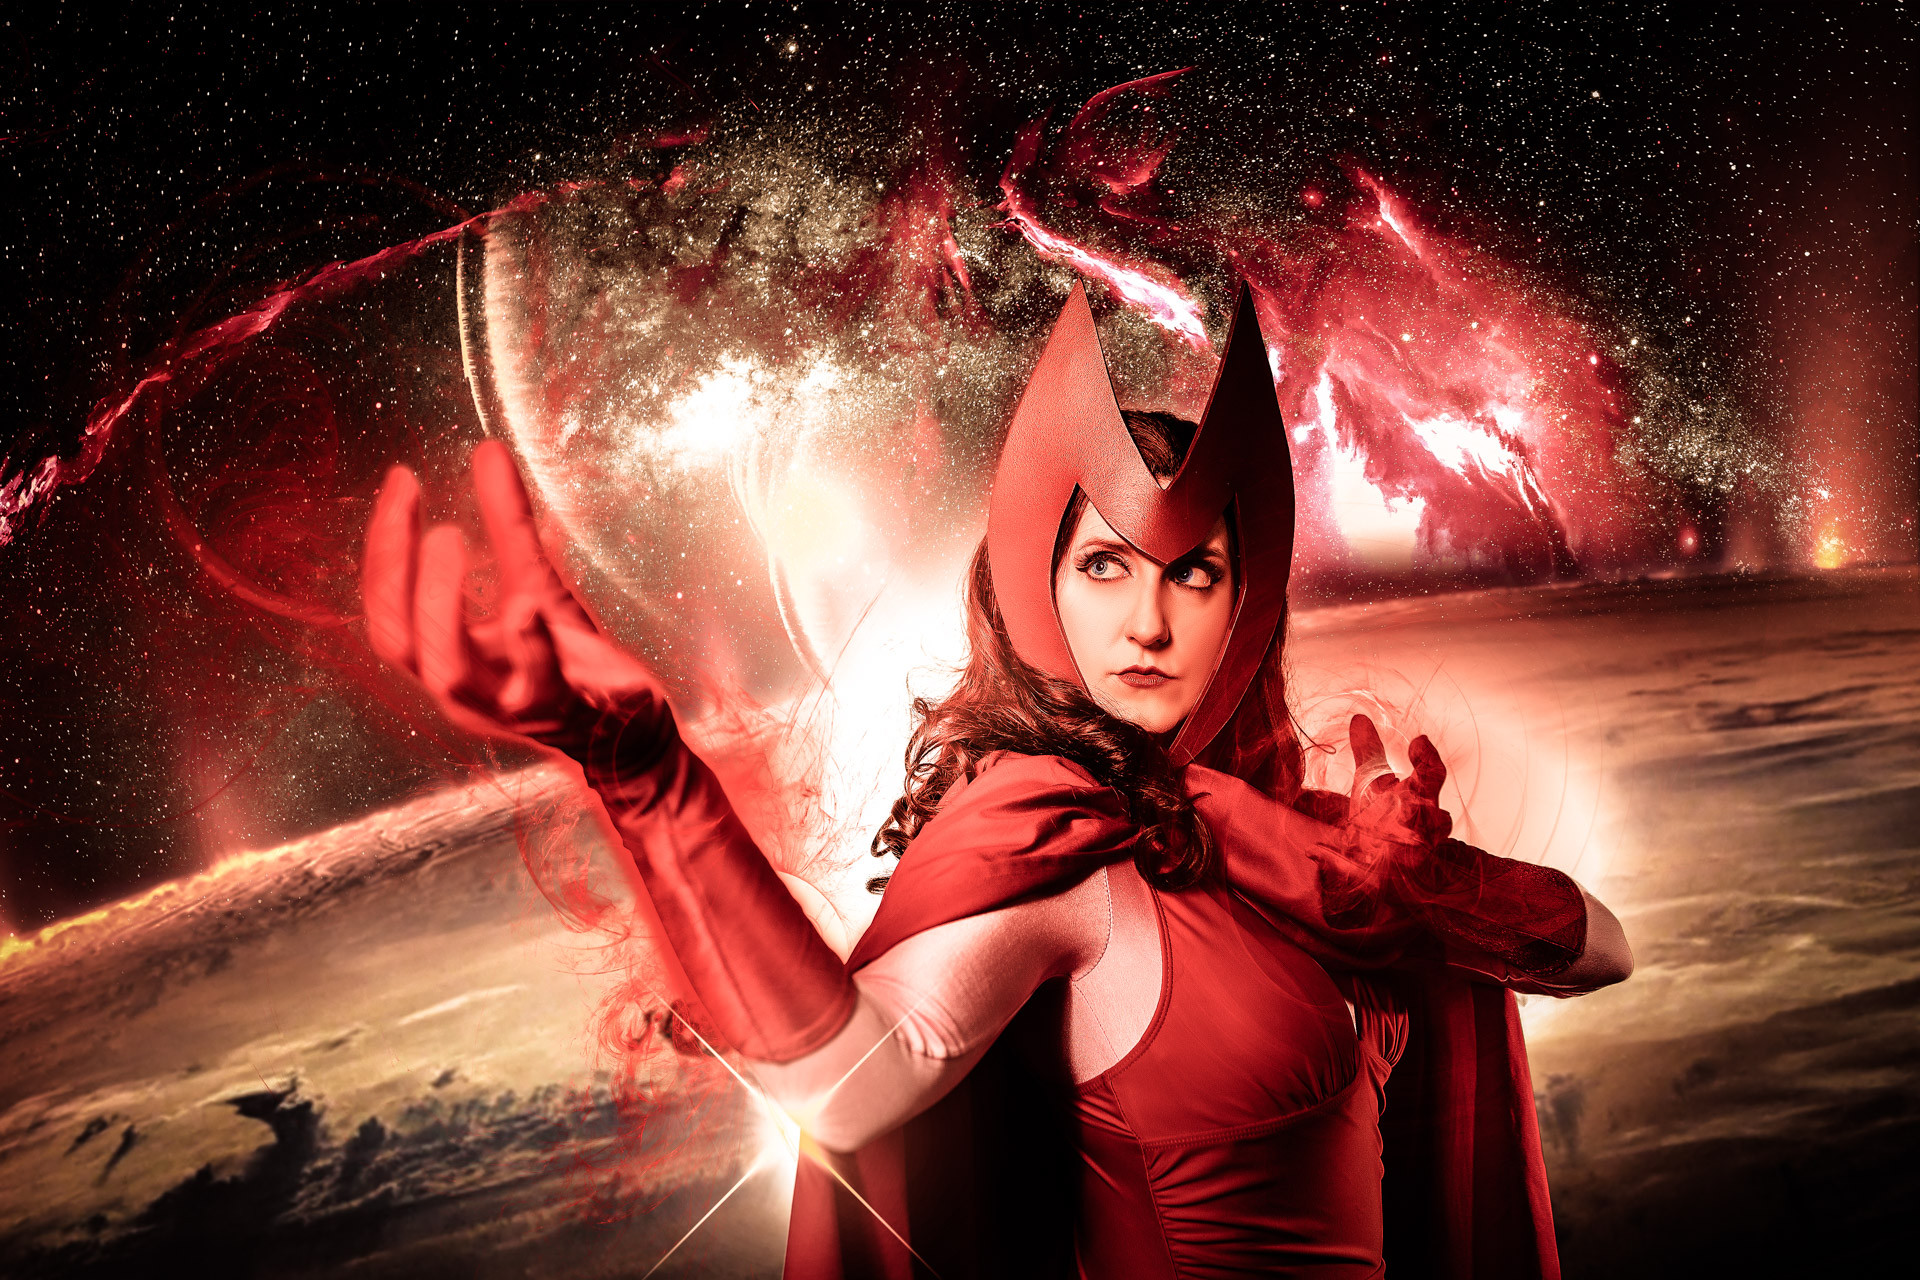 @kyberknightcosplay as Scarlet Witch